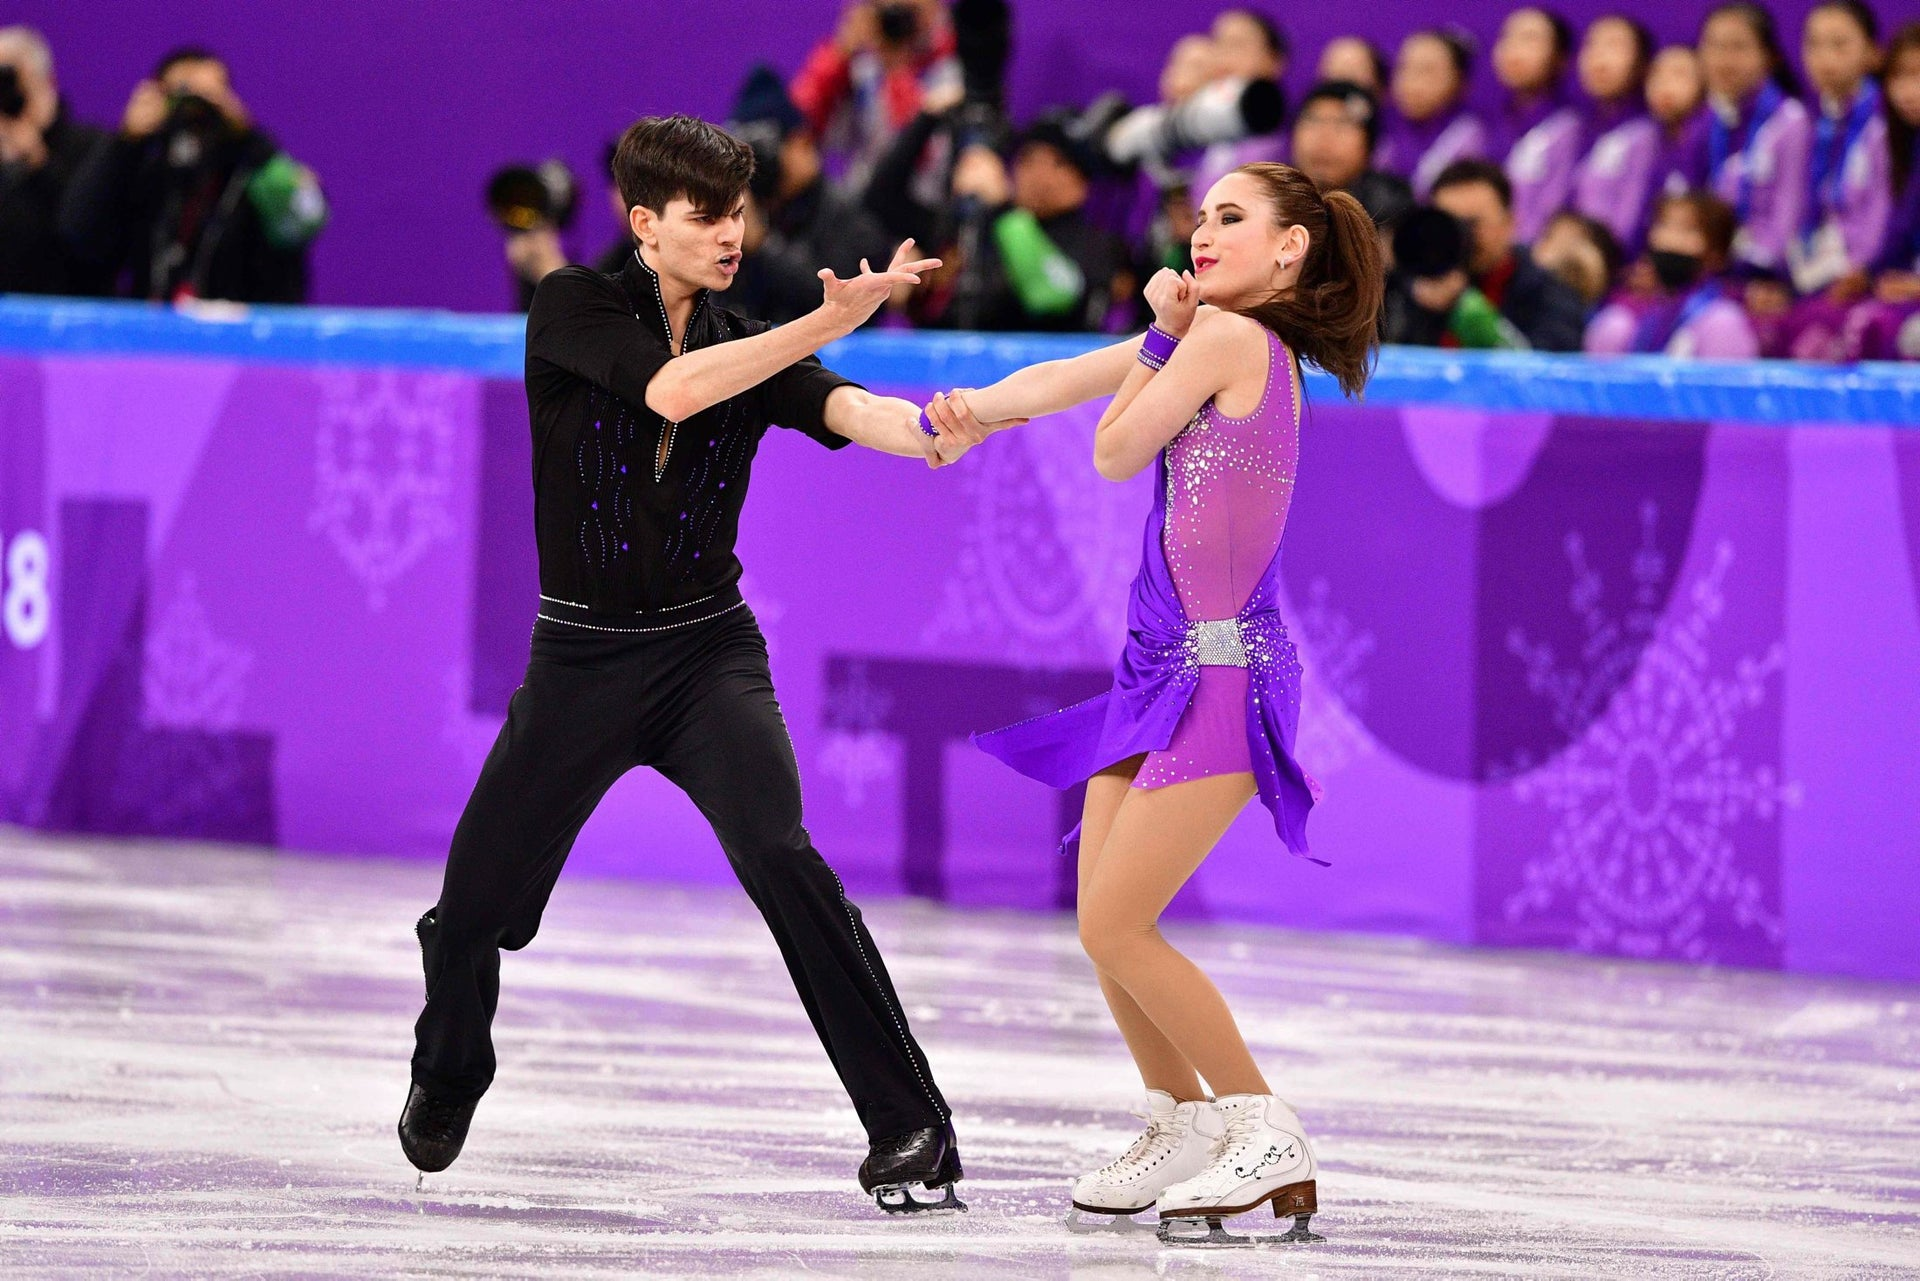 Israel's Adel Tankova and Israel's Ronald Zilberberg compete in the figure skating team event ice dance short dance during the Pyeongchang 2018 Winter Olympic Games at the Gangneung Ice Arena in Gangneung on February 11, 2018.